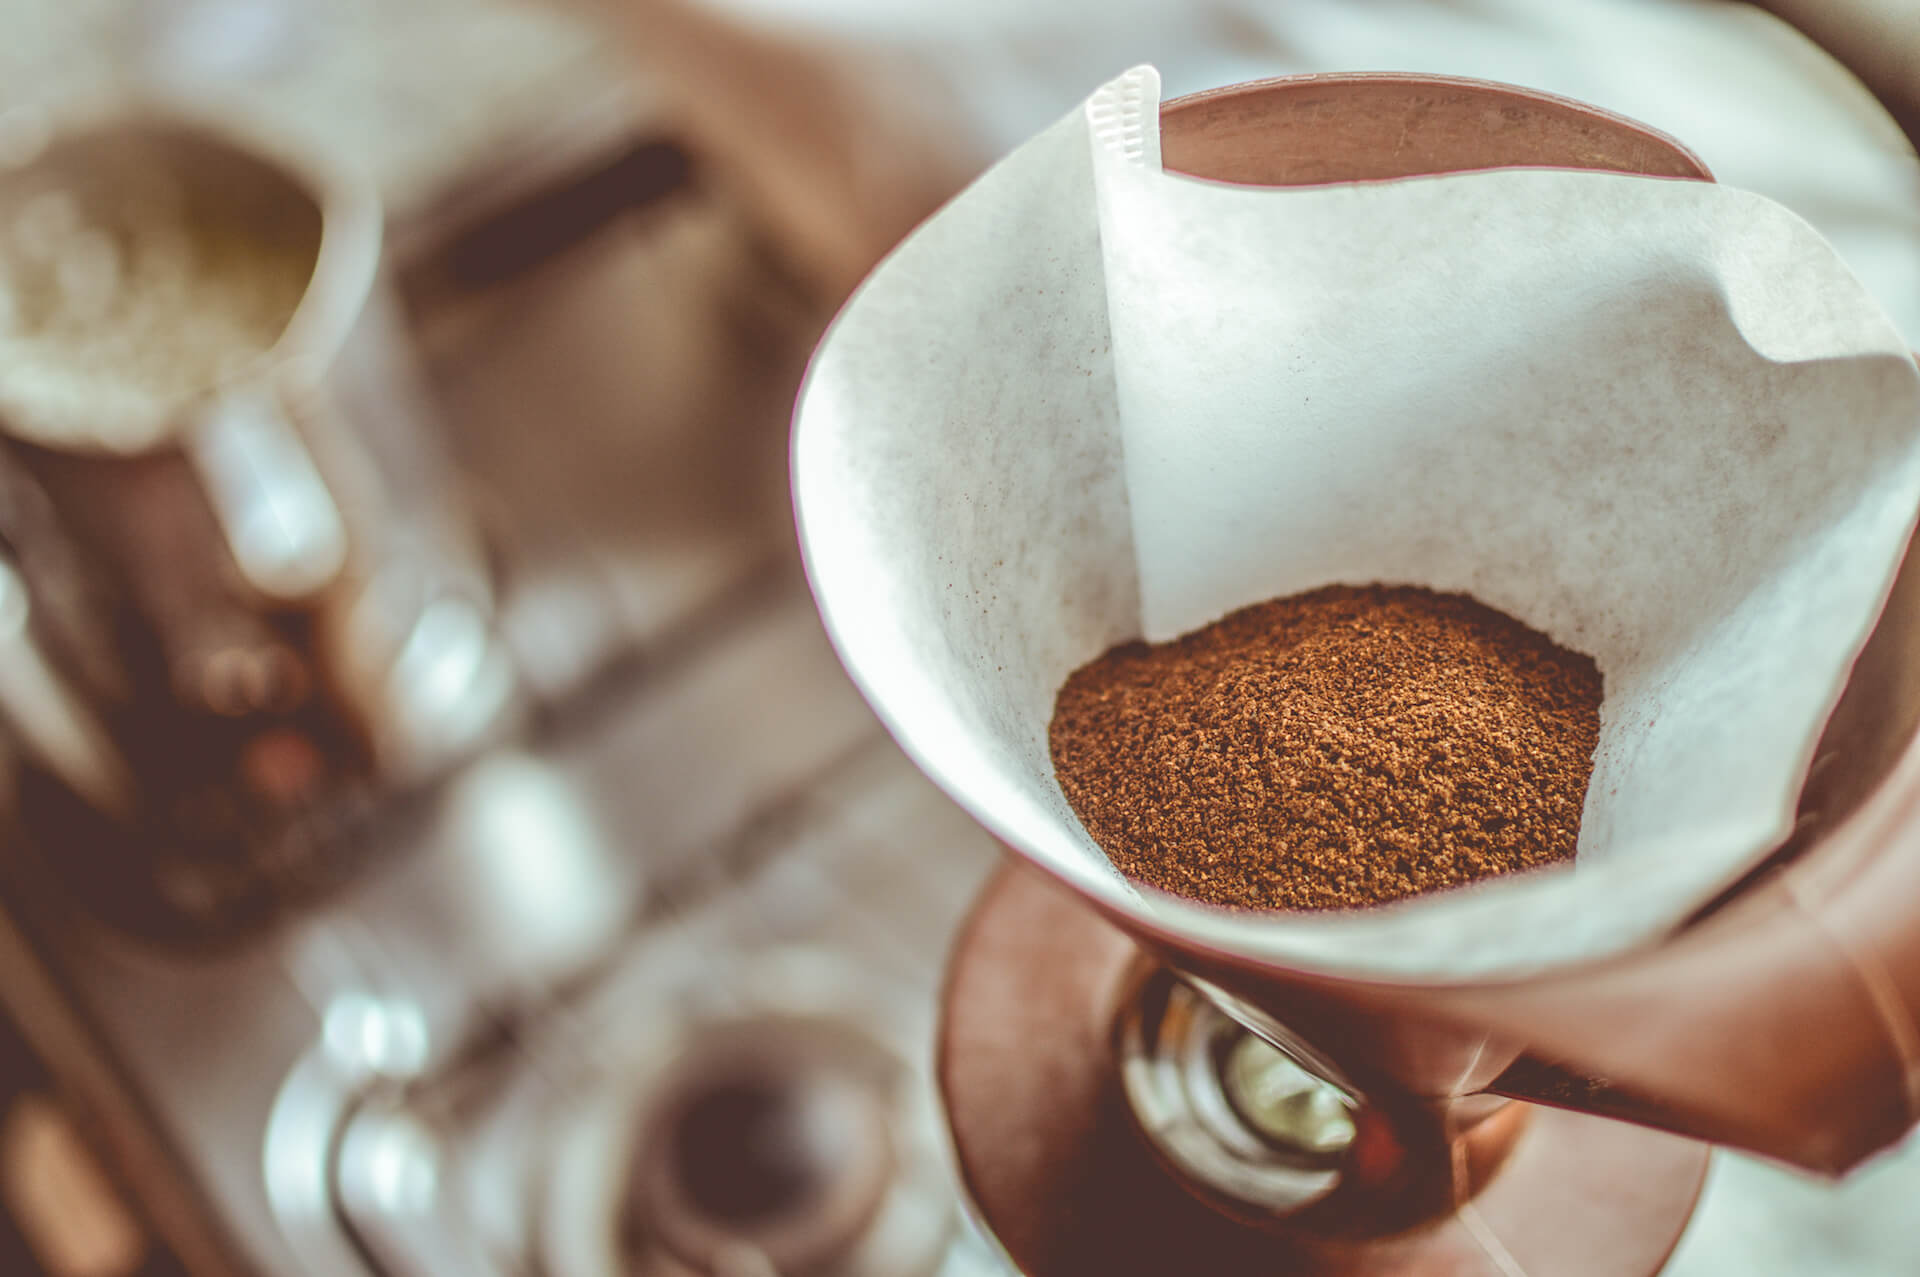 A close-up of a paper filter filled with ground coffee